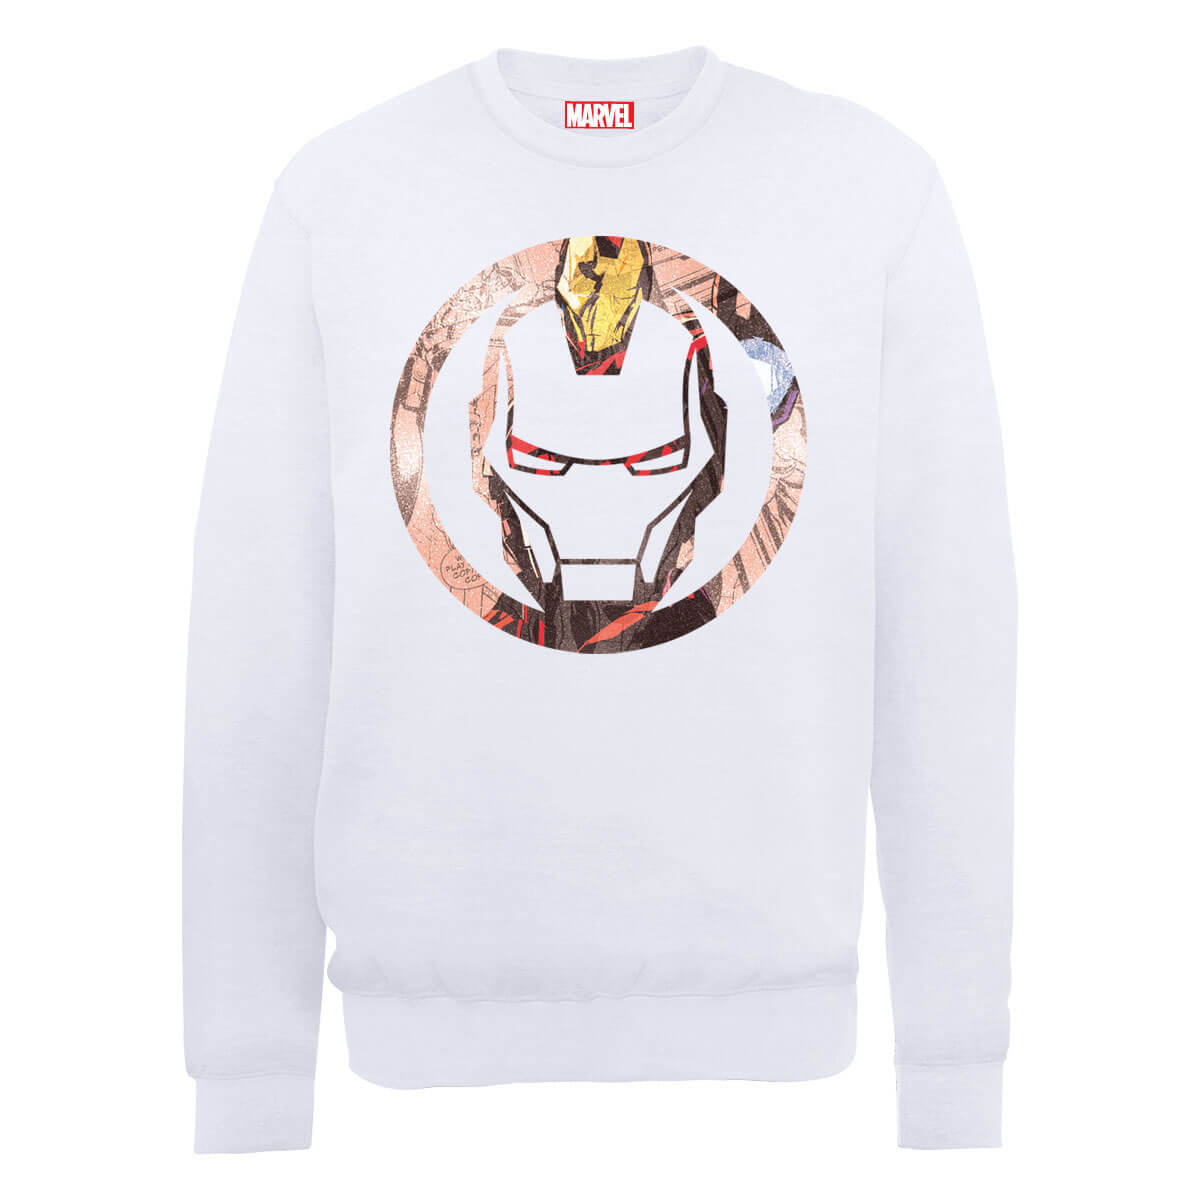 Marvel Avengers Assemble Iron Man Montage Sweatshirt - White